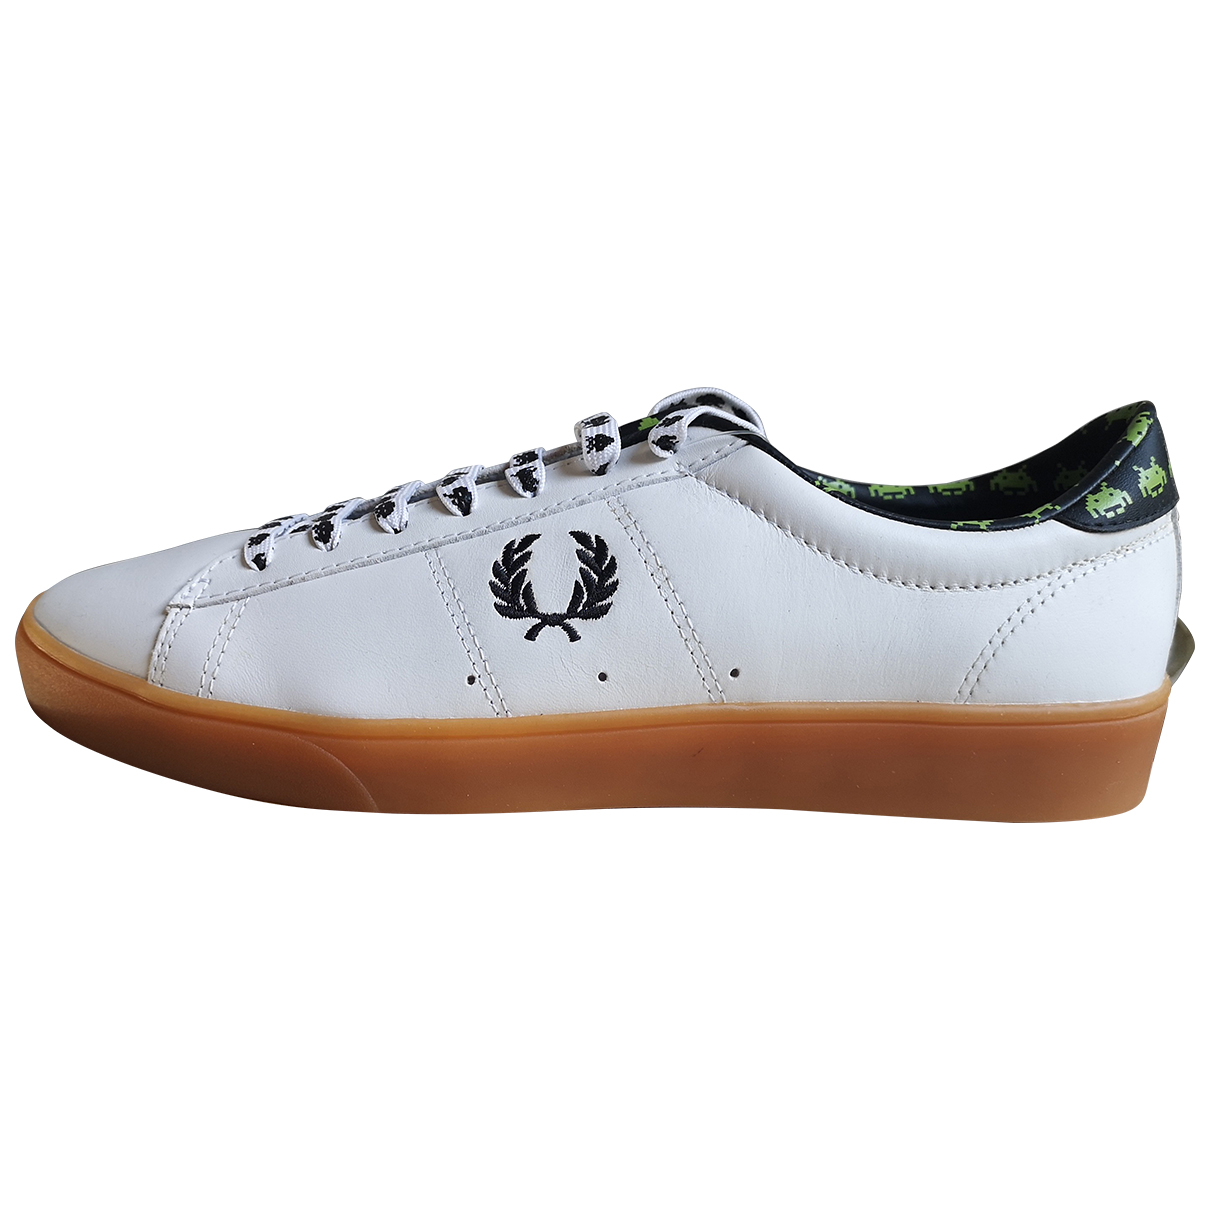 Fred Perry N White Leather Trainers for Men 42 EU